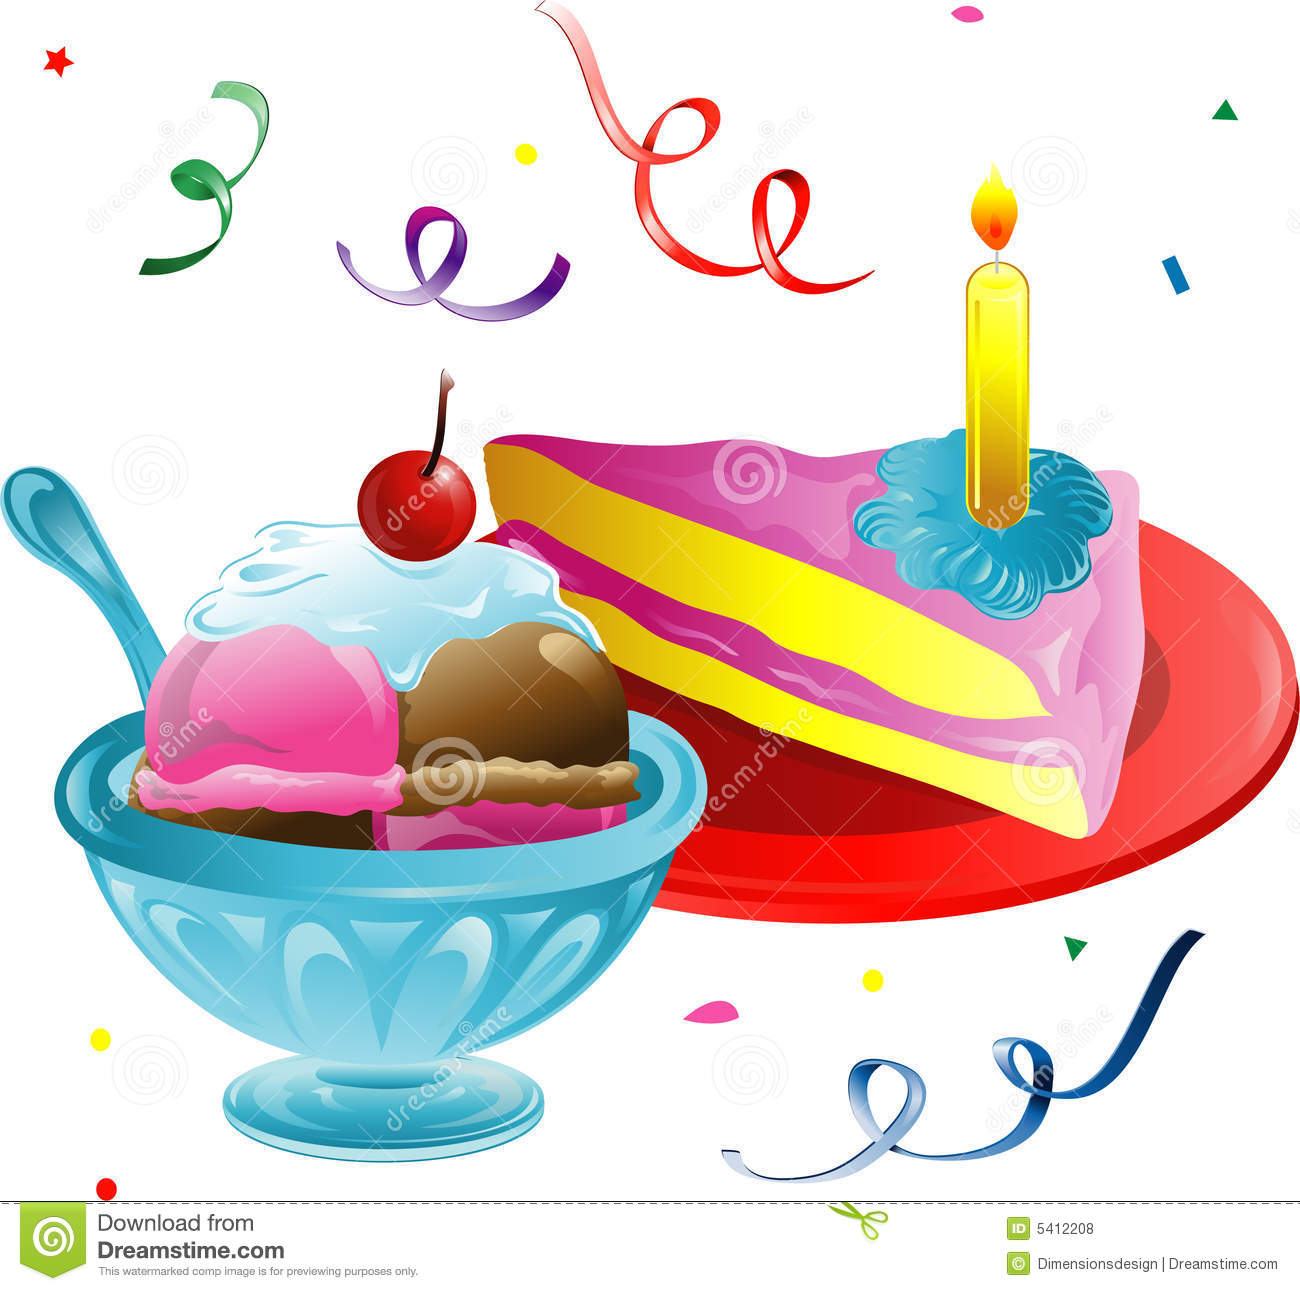 hight resolution of 1300x1291 dessert clipart birthday cake slice